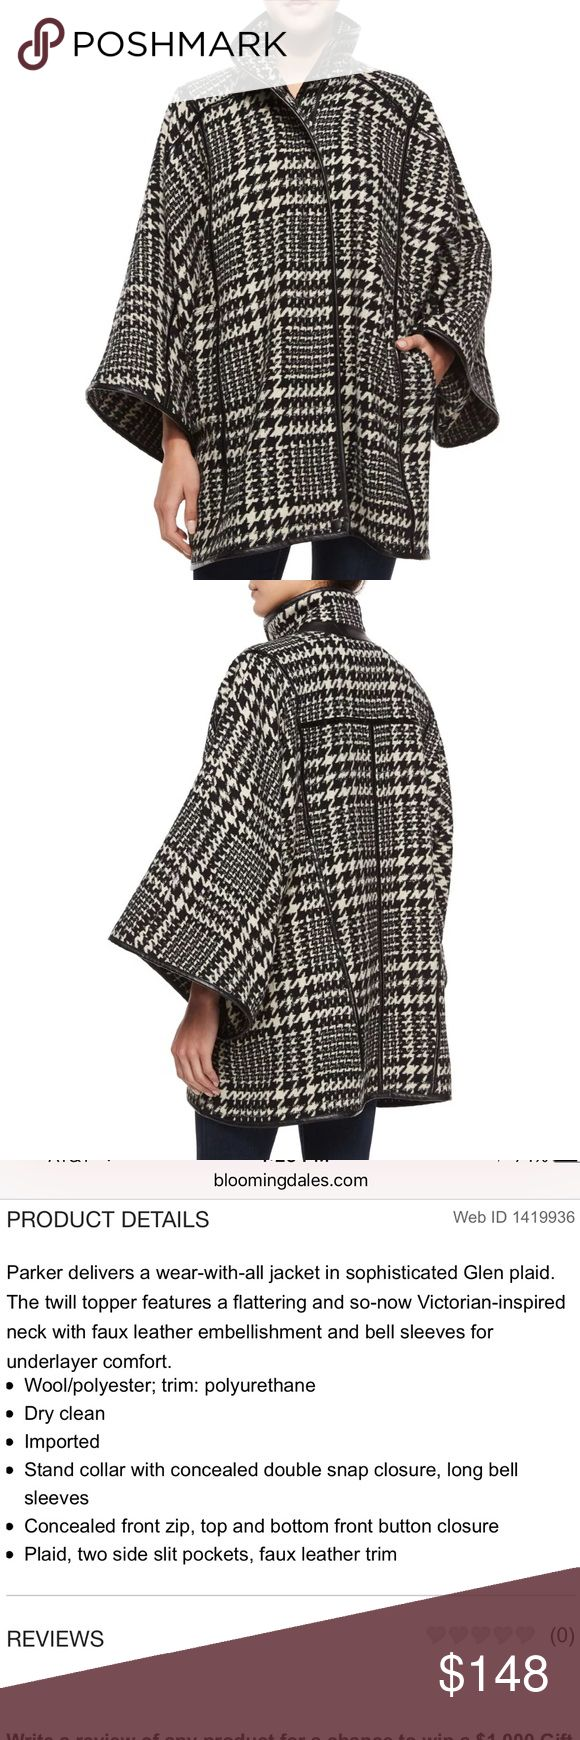 Parker Houndstooth Coat Parker Coat with oversized fit. Size M. Unlined with faux leather trim. Worn once, like new condition. Parker Jackets & Coats Capes